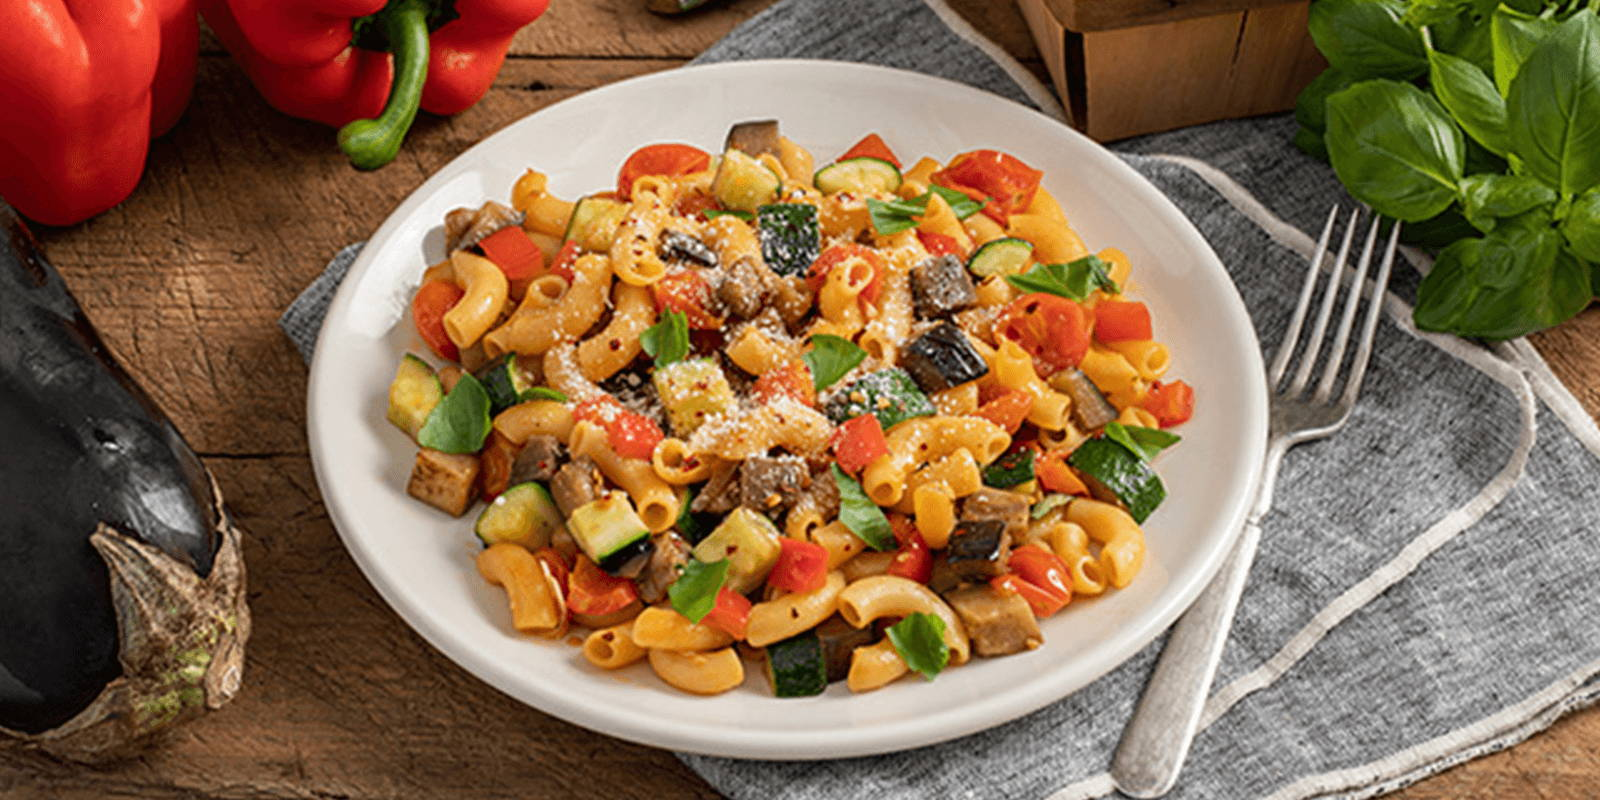 Bowl of pasta with chopped vegetables on a counter with whole vegetables.